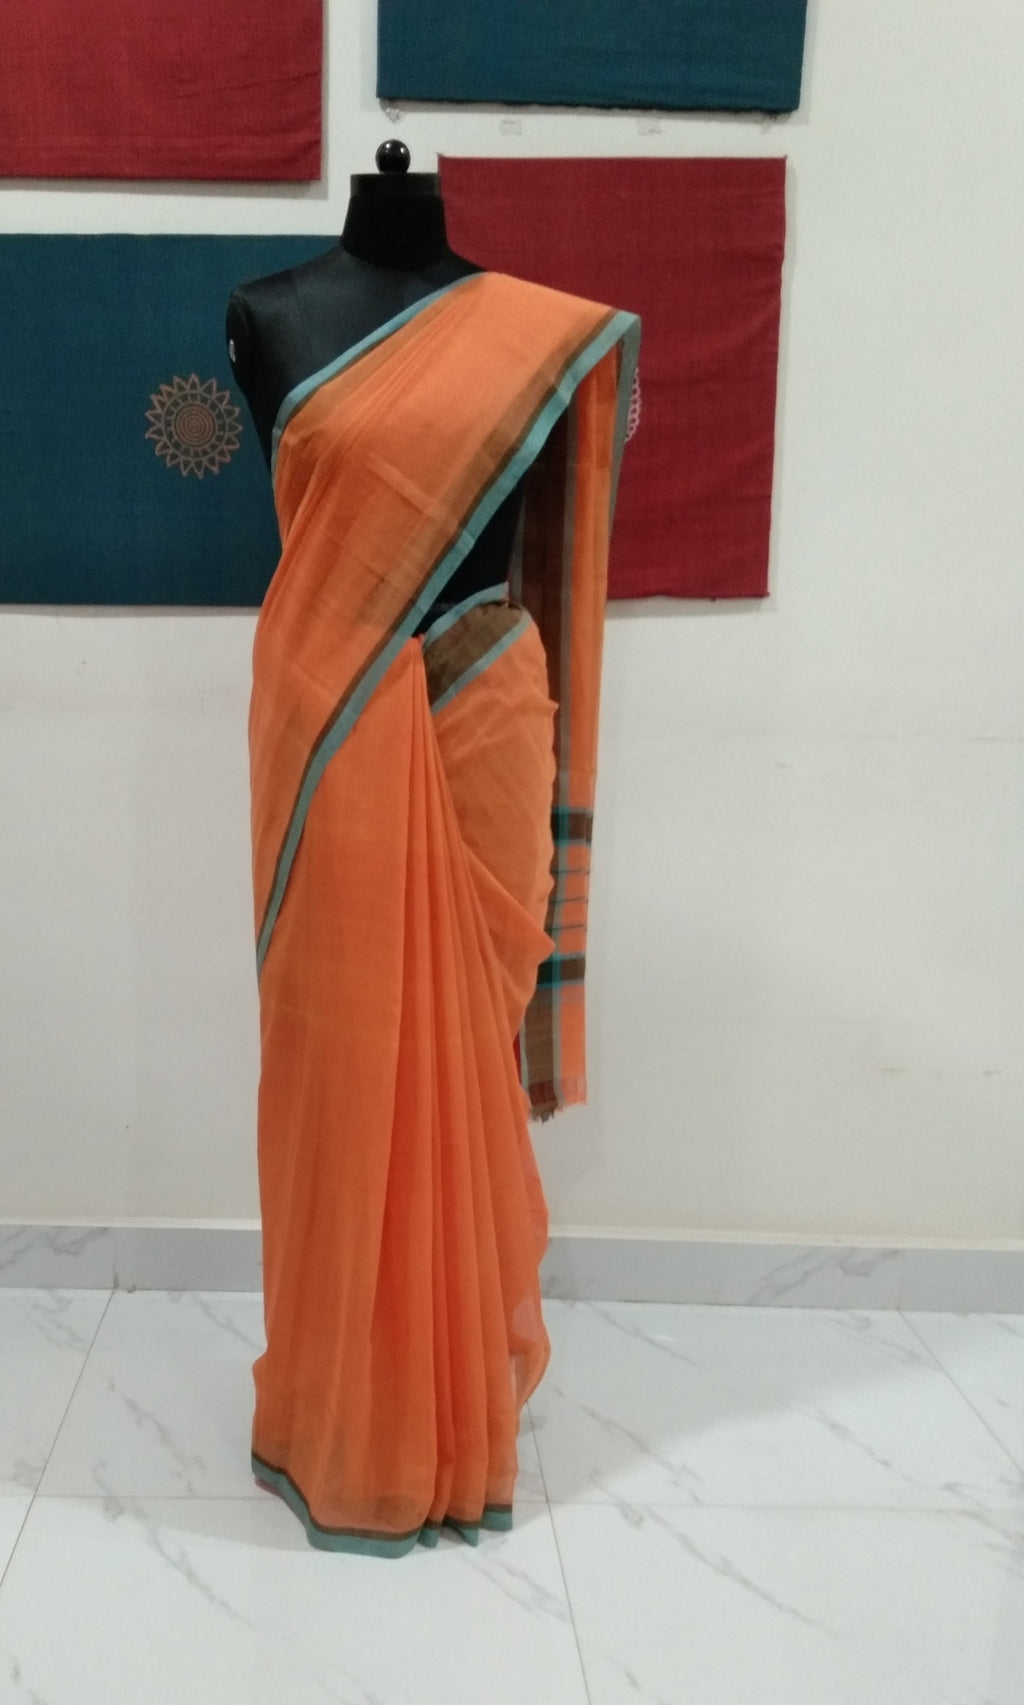 Bobbili Cotton Saree (Solid) - Musk Melon/Teal